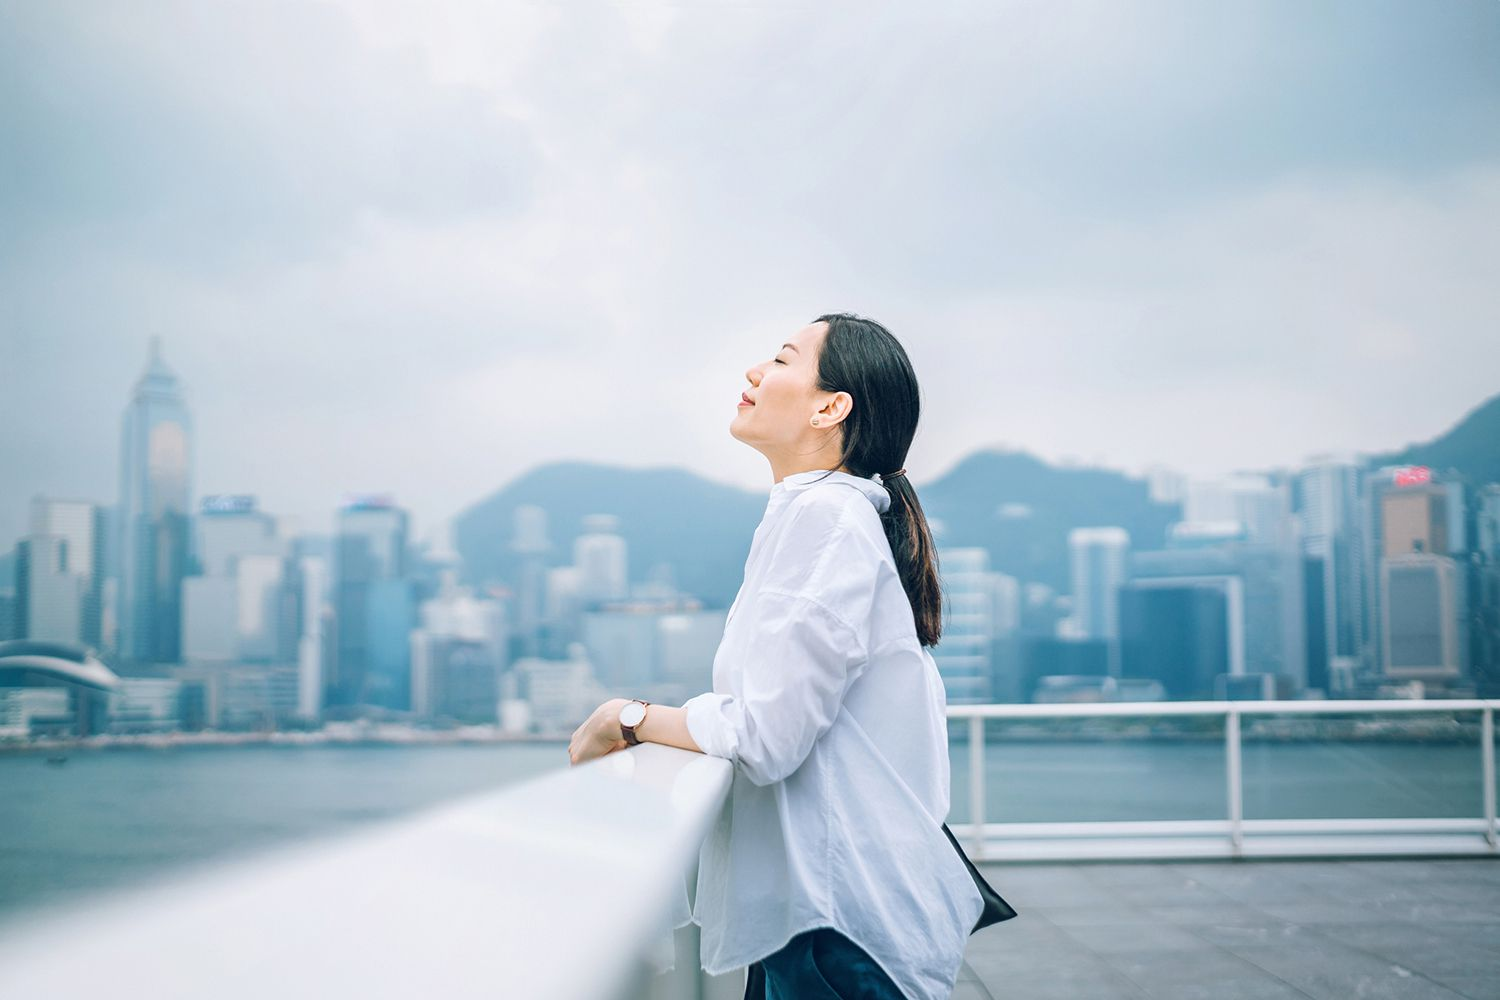 Woman taking deep breath outdoors with cityscape in the background